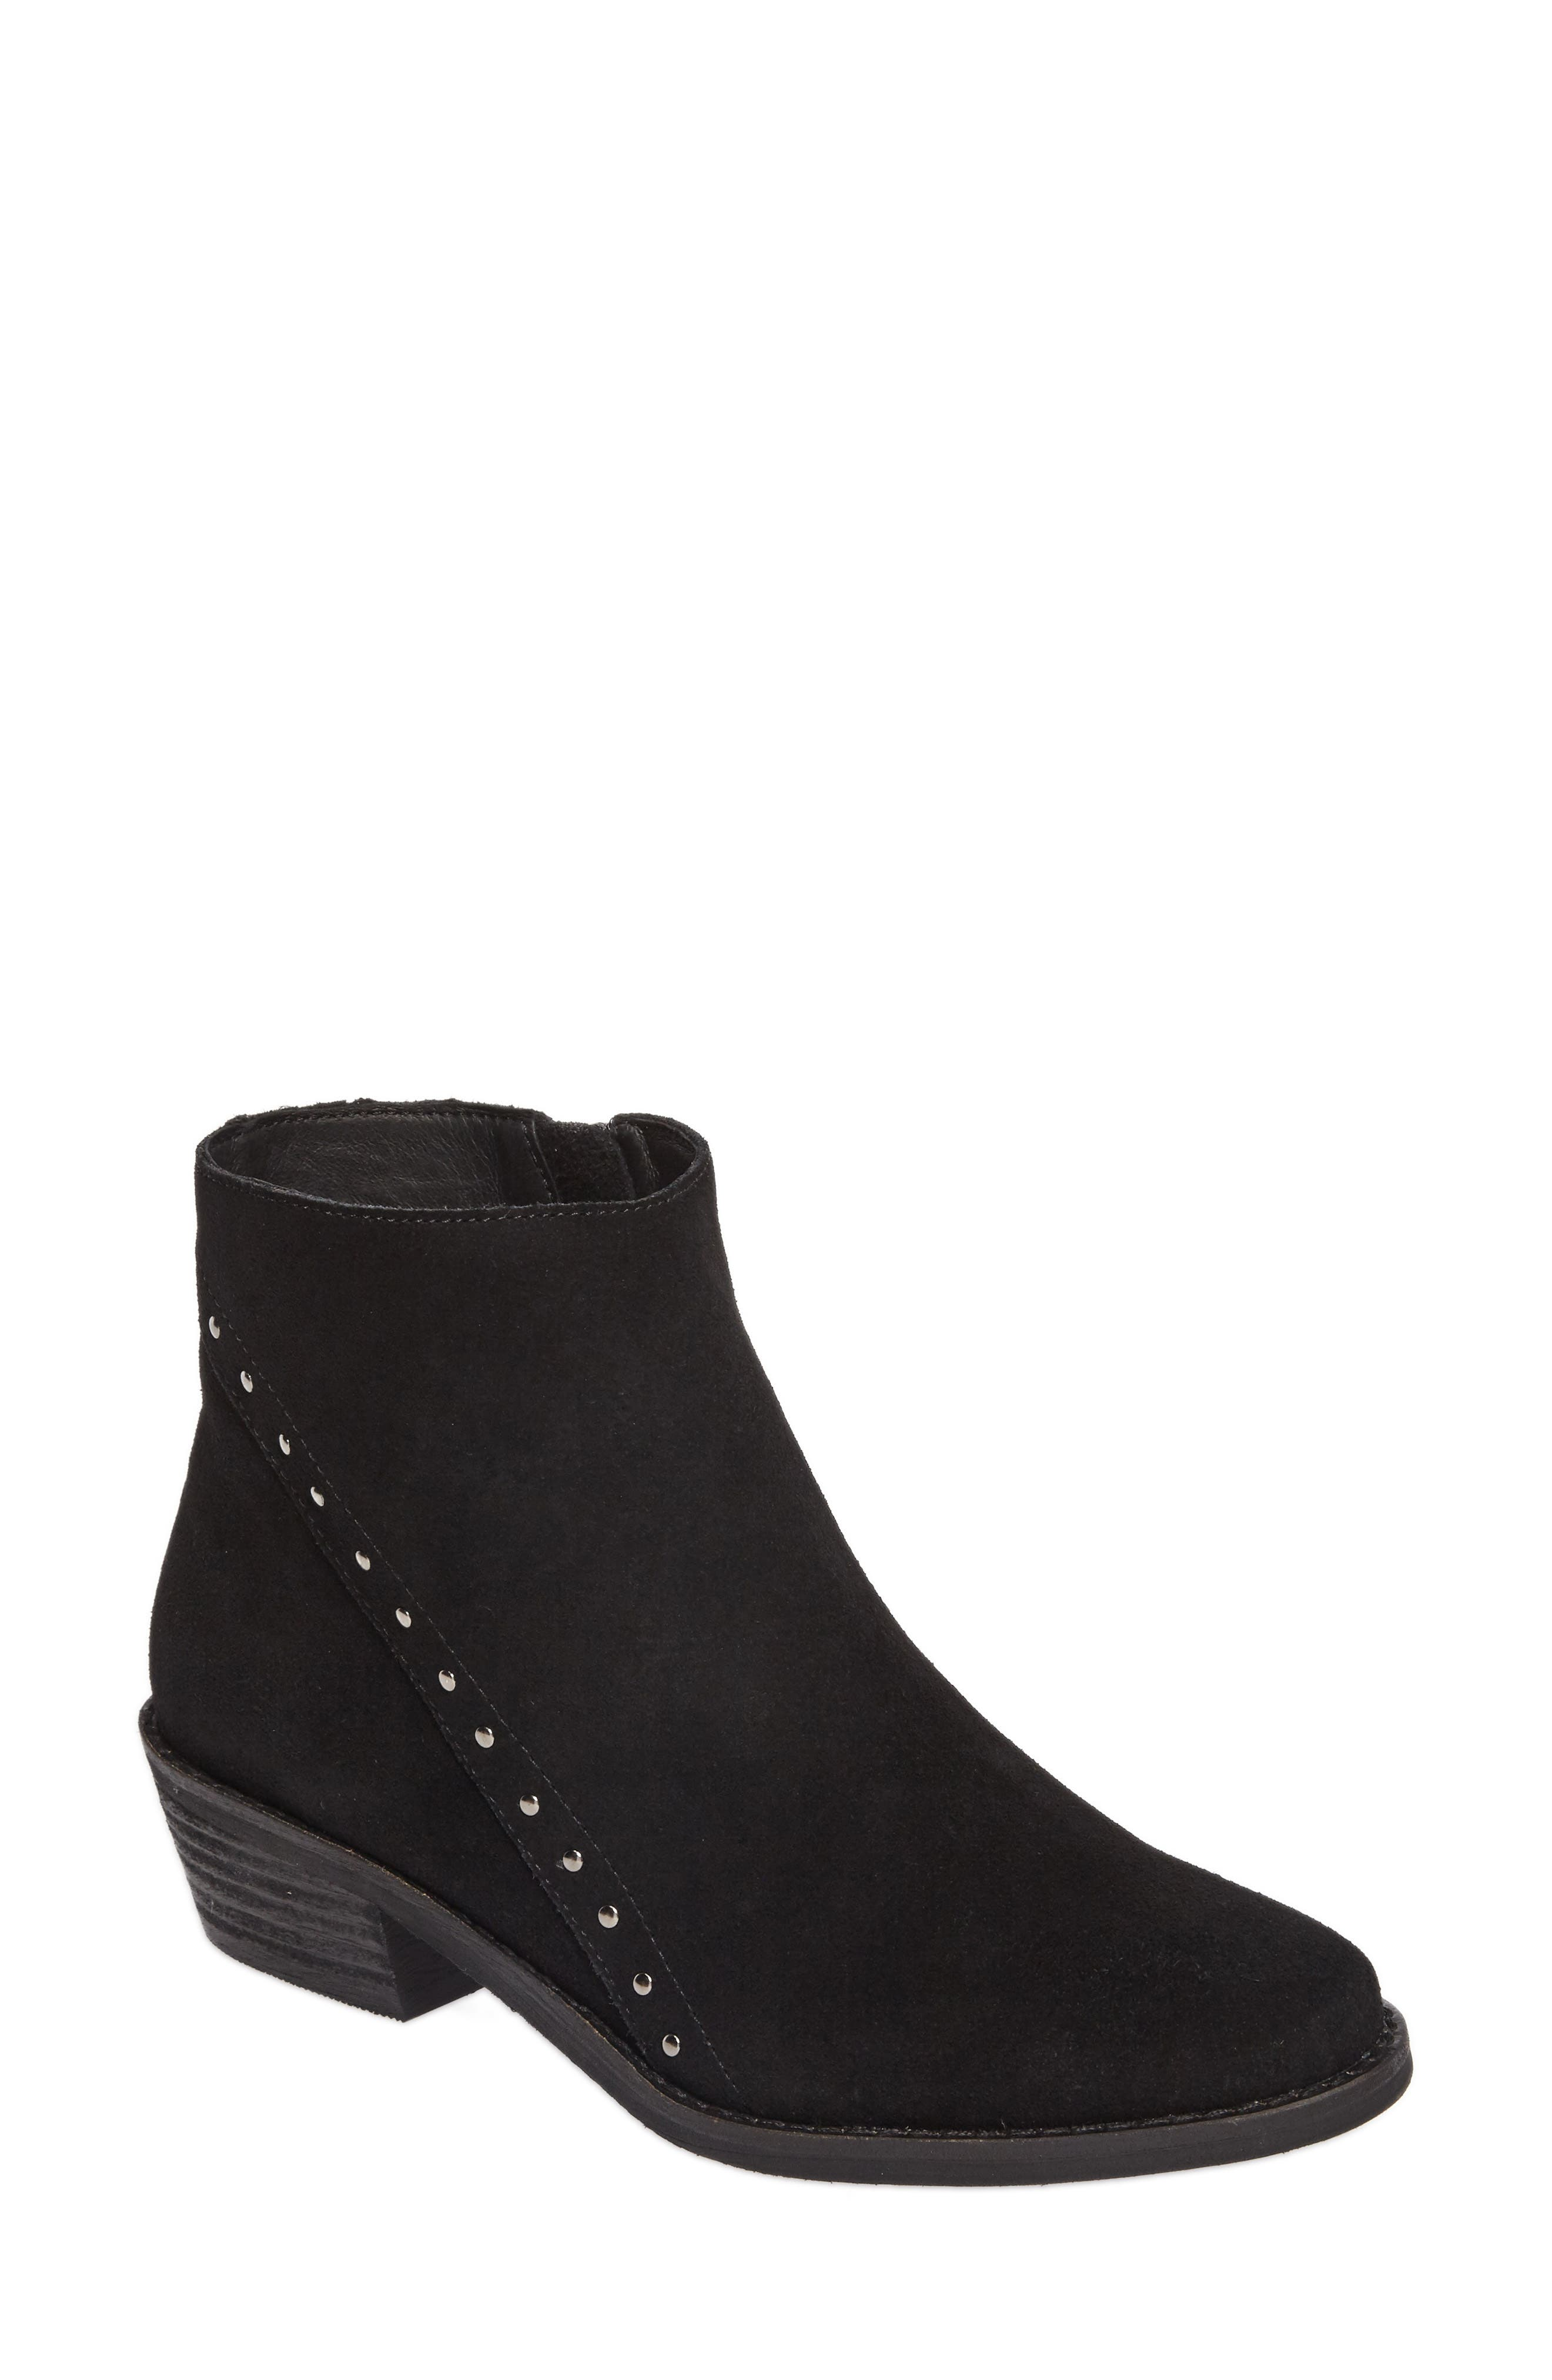 Irven Stud Bootie,                         Main,                         color, 001